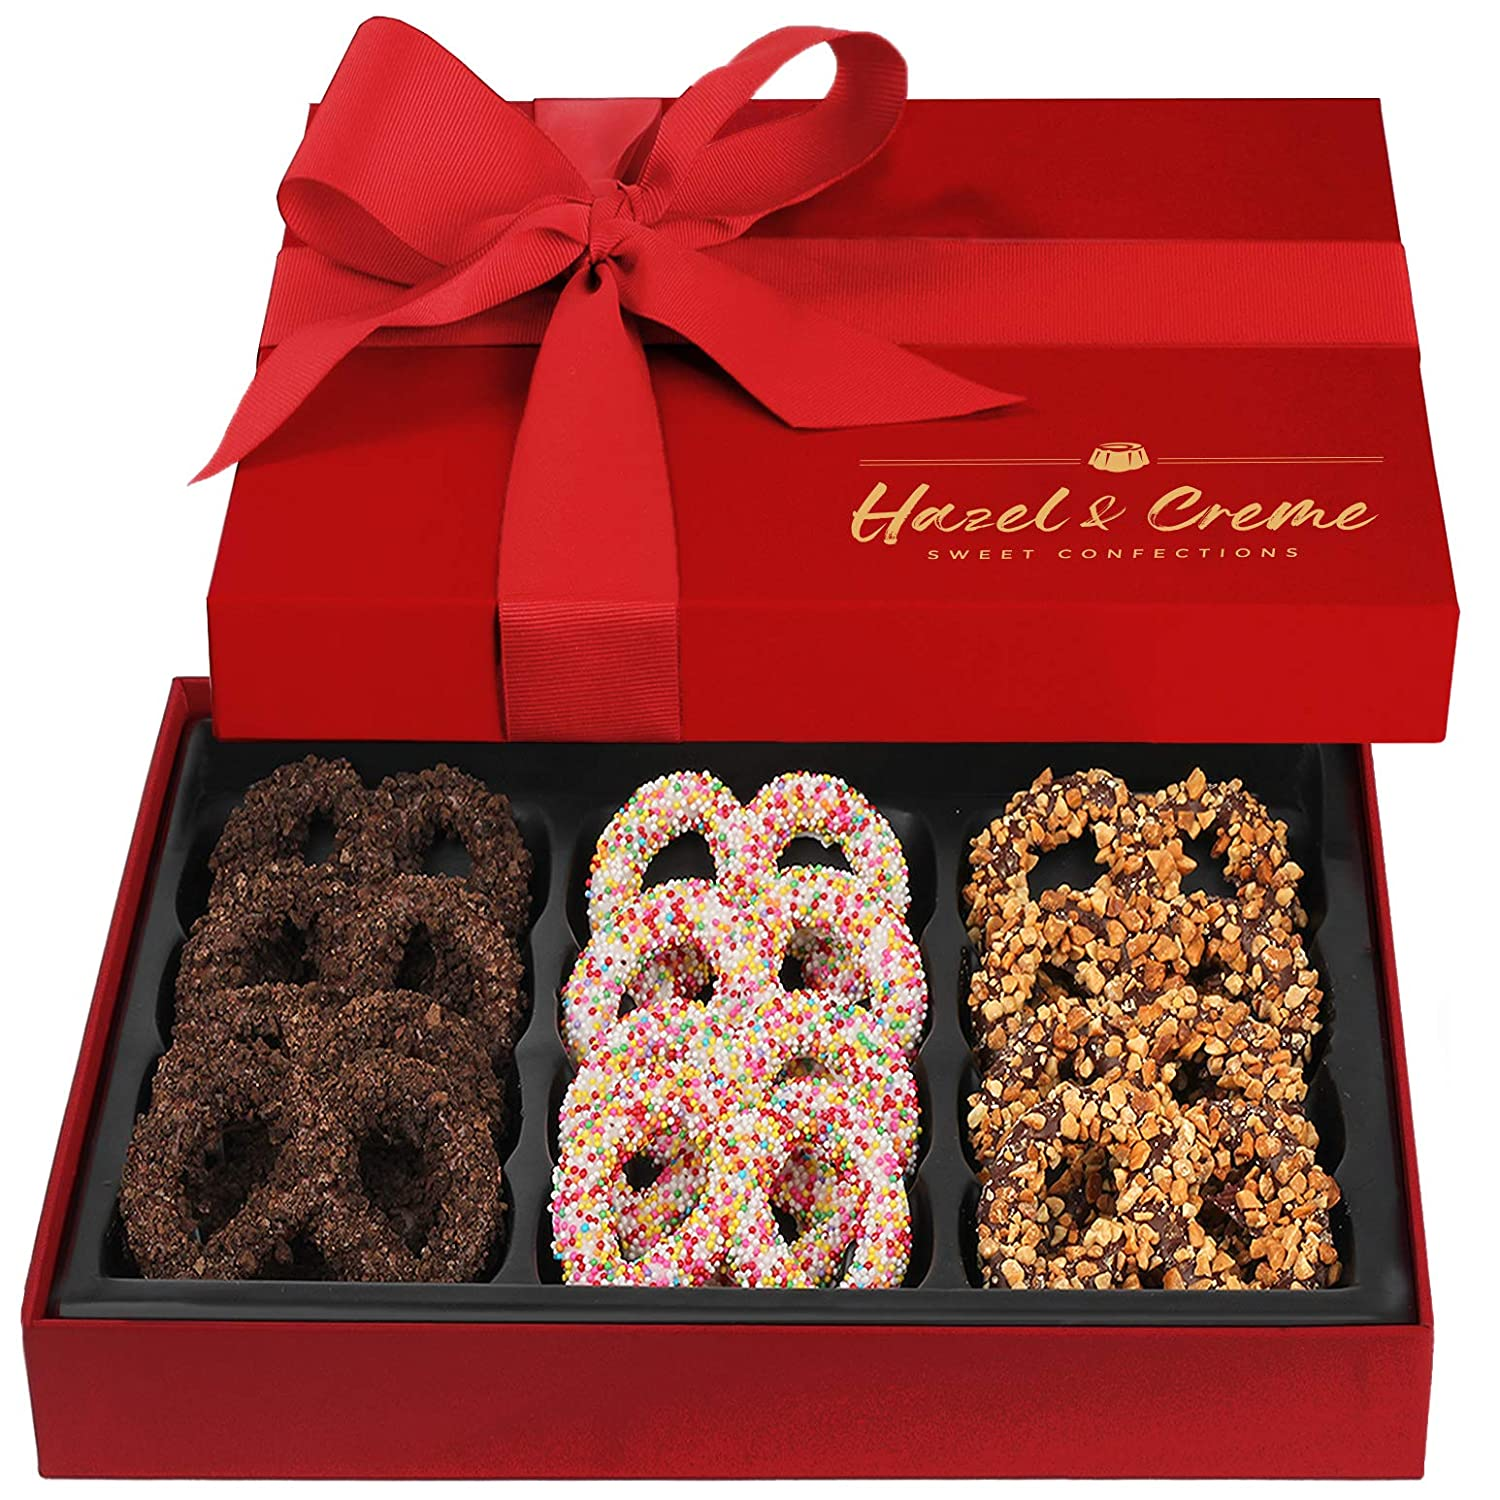 Hazel & Creme Chocolate Covered Pretzel Gift Box - Gourmet Food Gift - Birthday, Corporate, Holiday Gourmet Gift